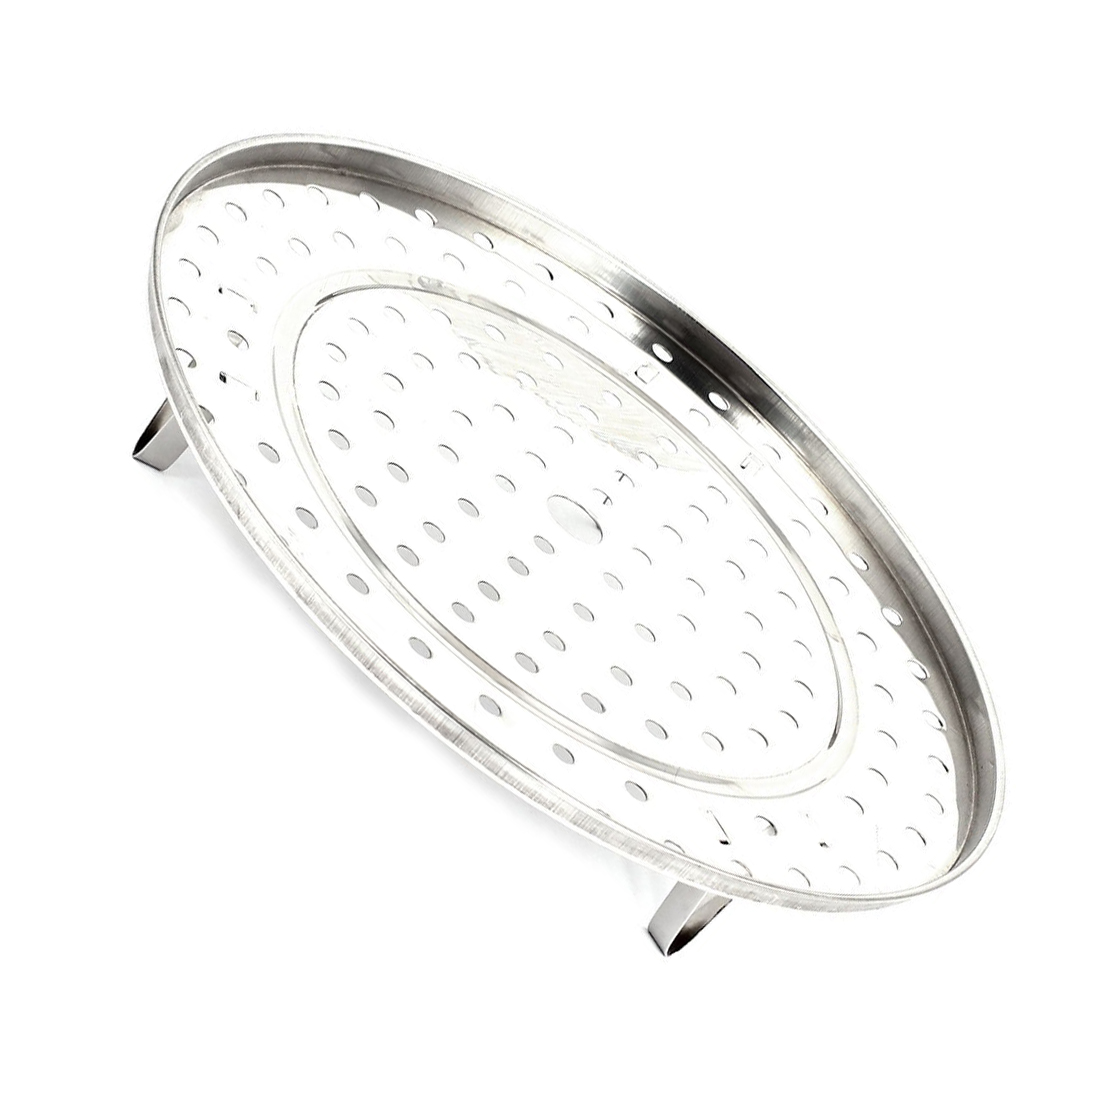 HGHO-Stainless Steel Kitchen Food Steaming Steamer Rack Stand 27.5cm